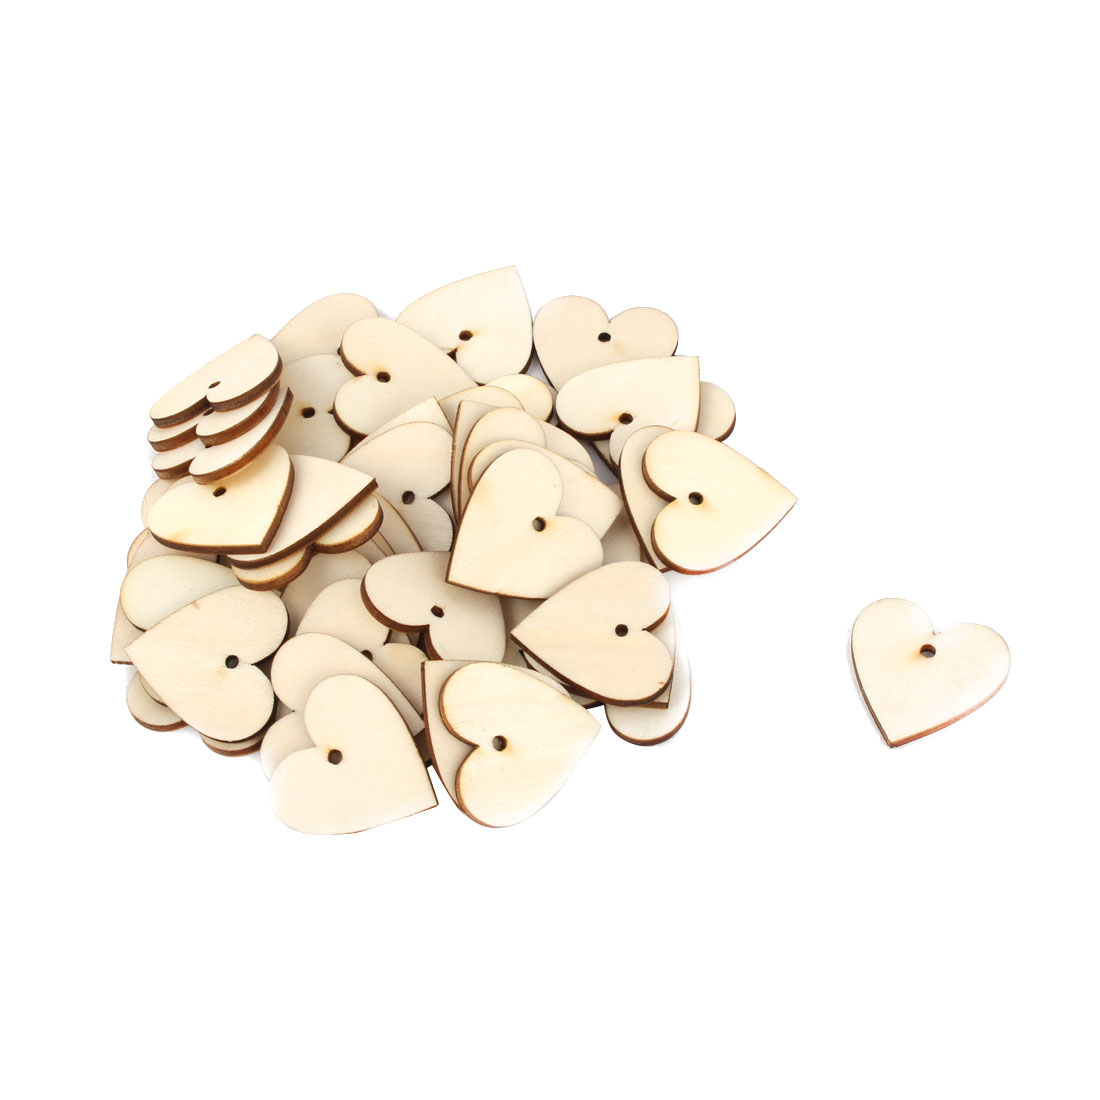 Holiday Wooden Love Heart Shaped DIY Wedding Ornaments Beige 30mm x 30mm 50 Pcs